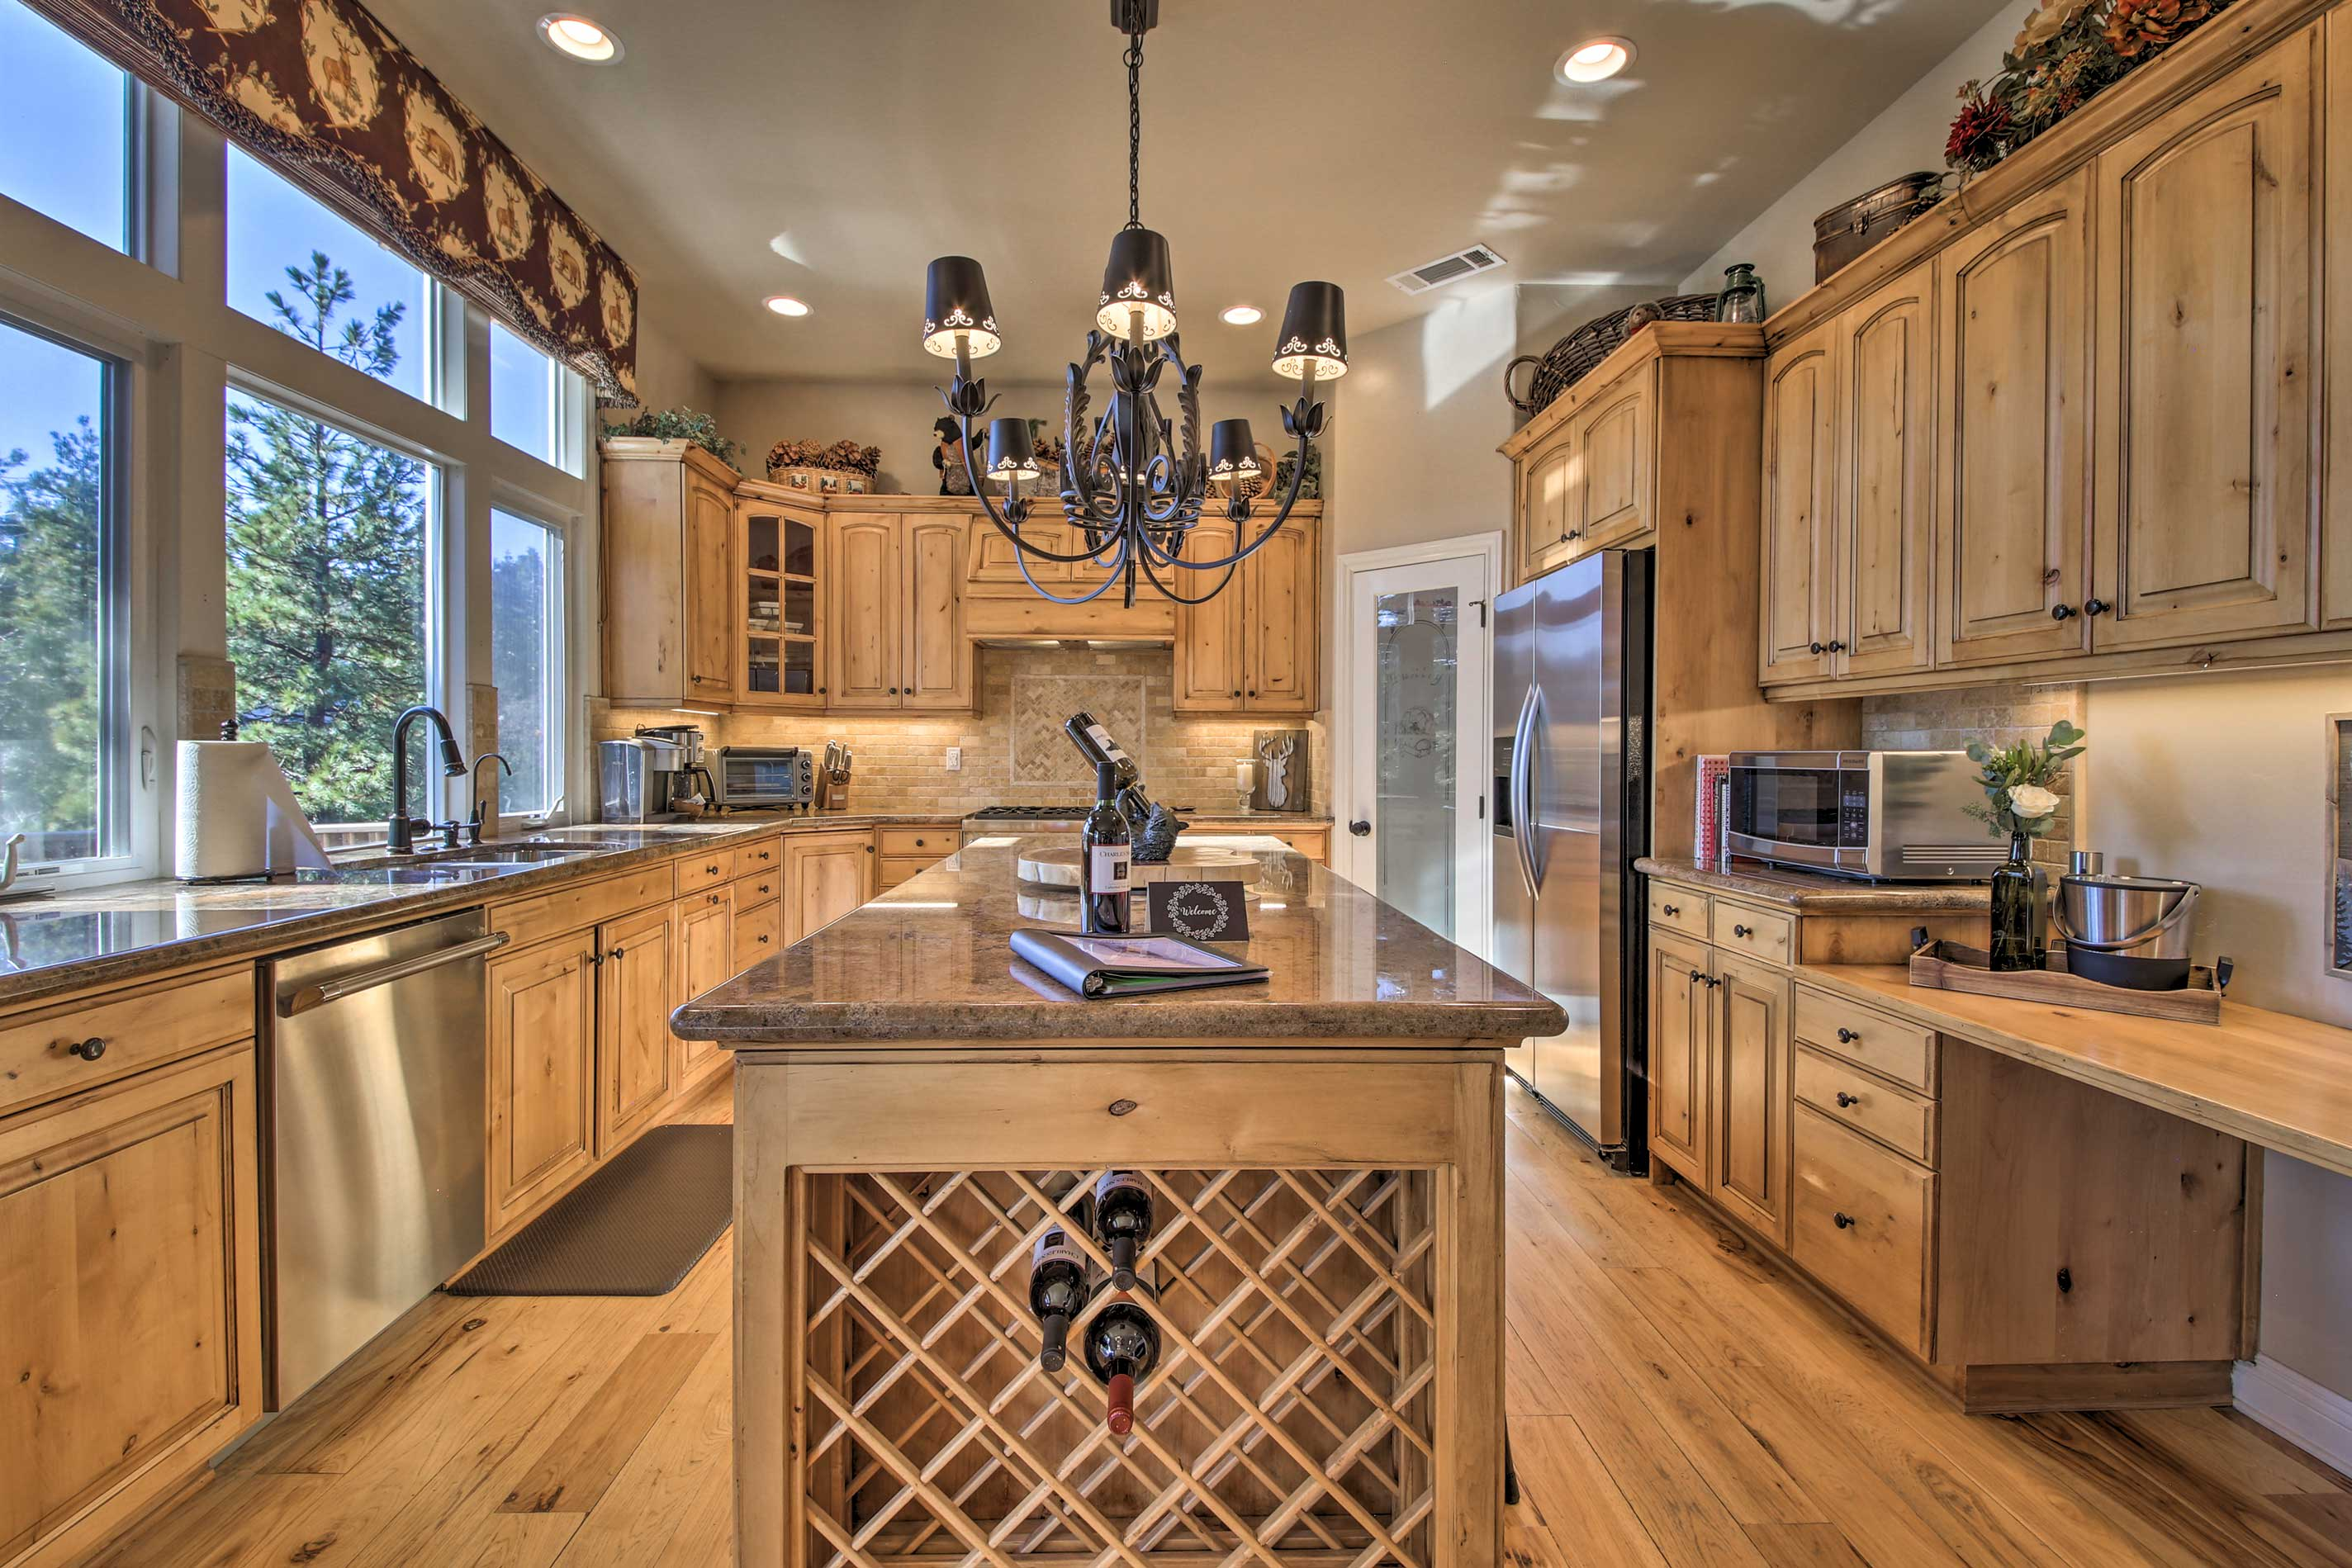 From stainless steel appliances to granite counters, the kitchen is complete!